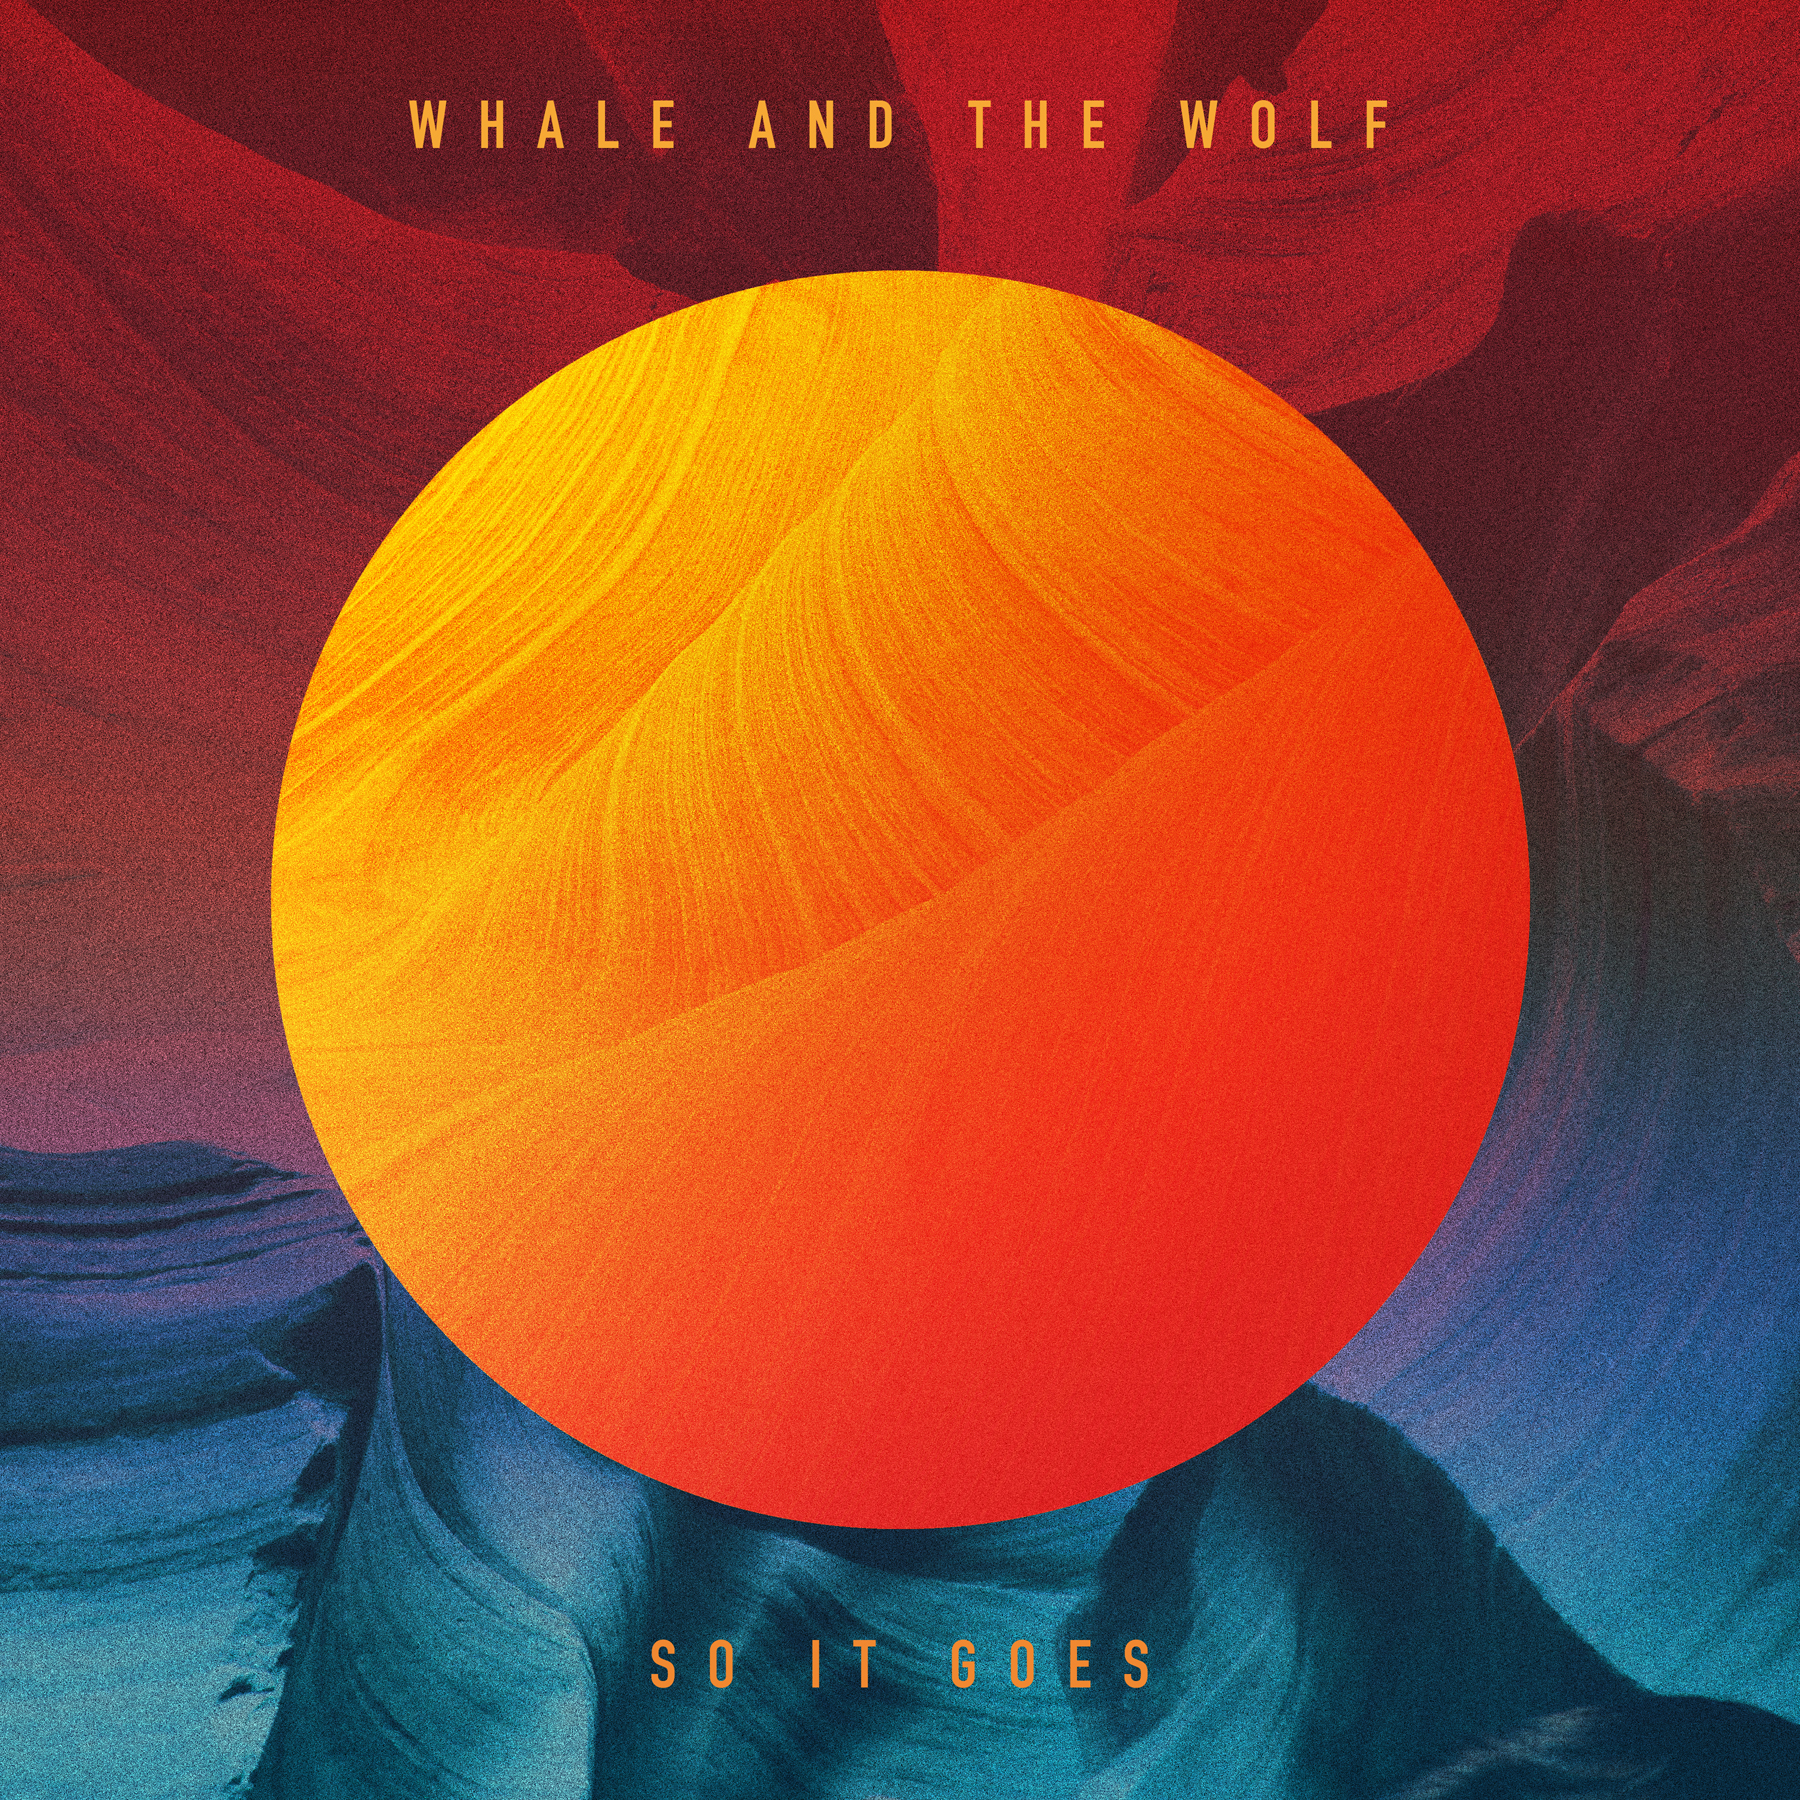 Whale and the Wolf visiting Power tomorrow at noon!